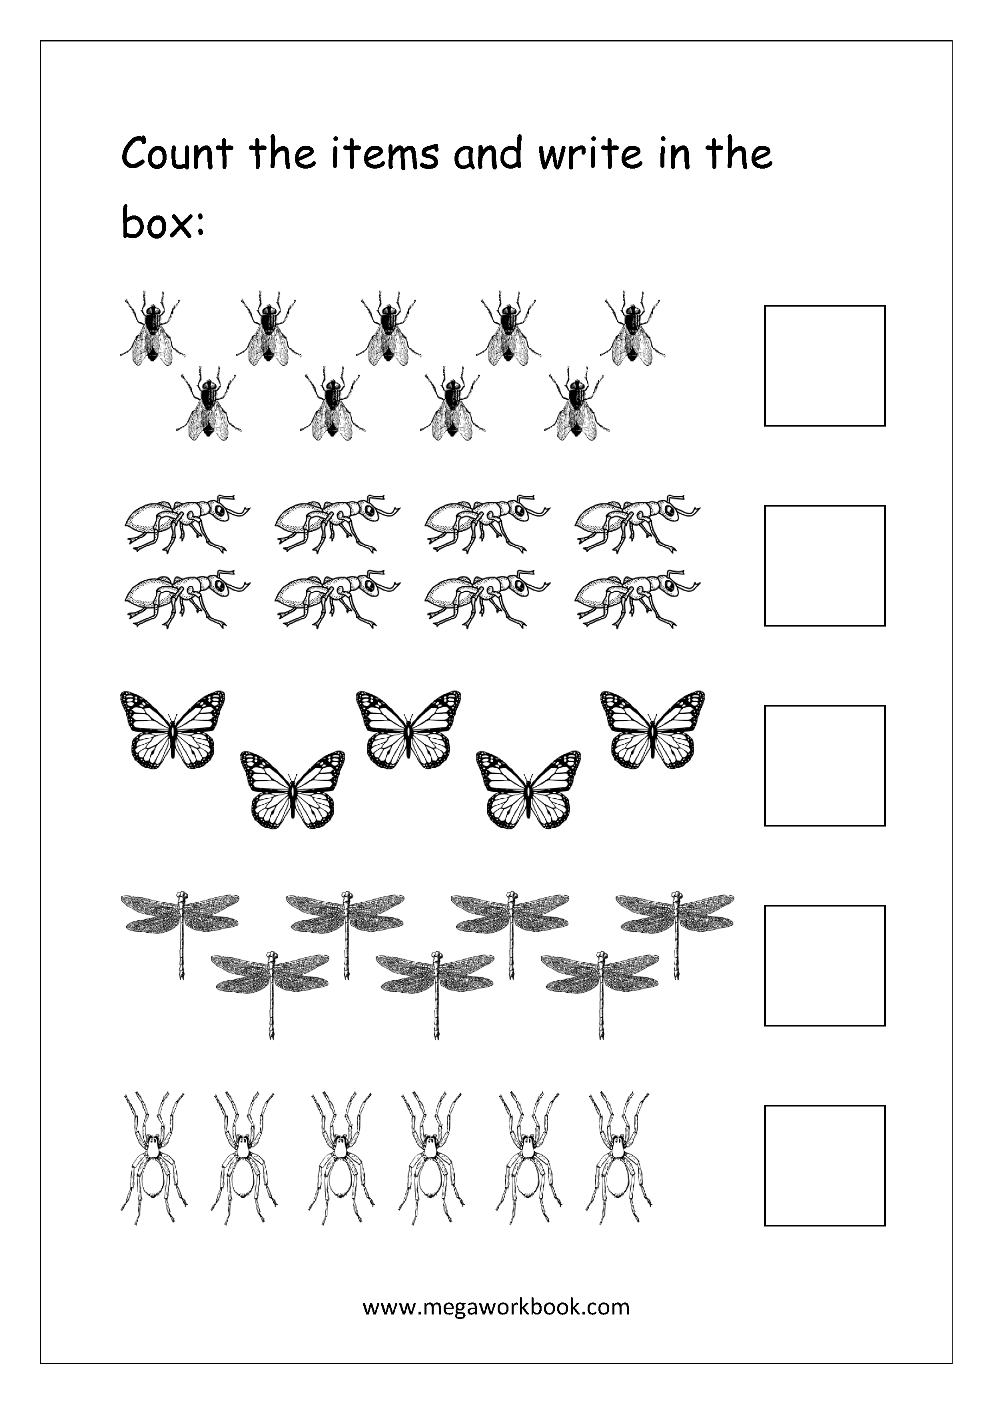 Easter Math Worksheets For Kids. | School Kids | Pinterest | Math ...